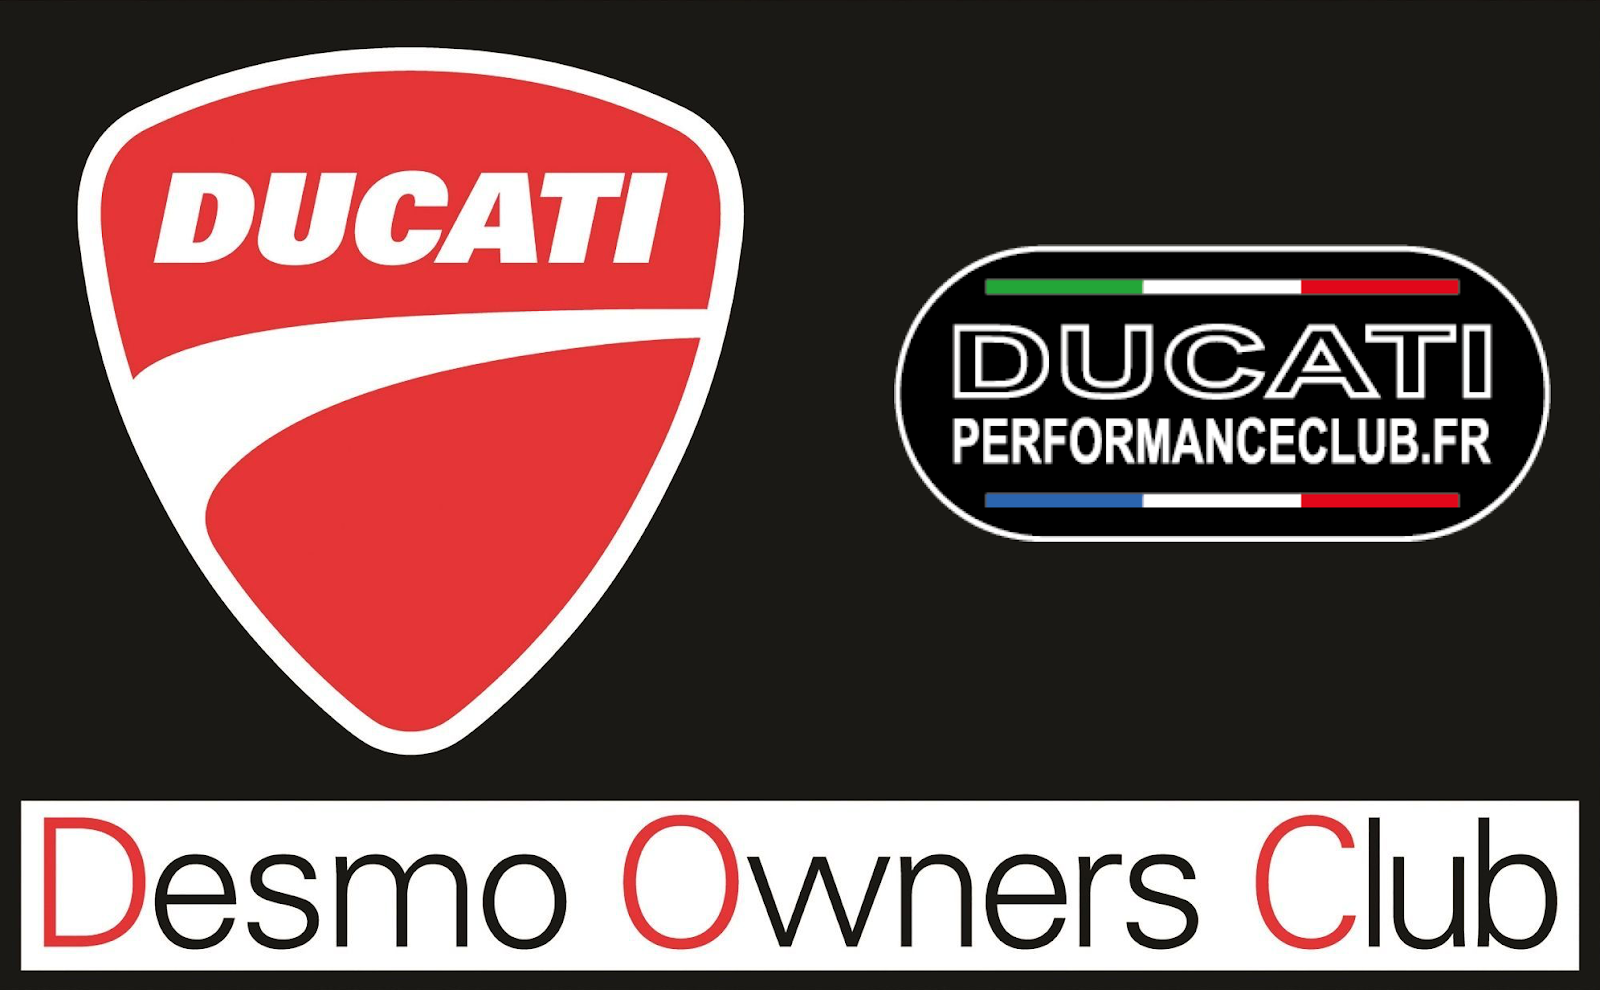 Ducati PerformanceClub in NYC